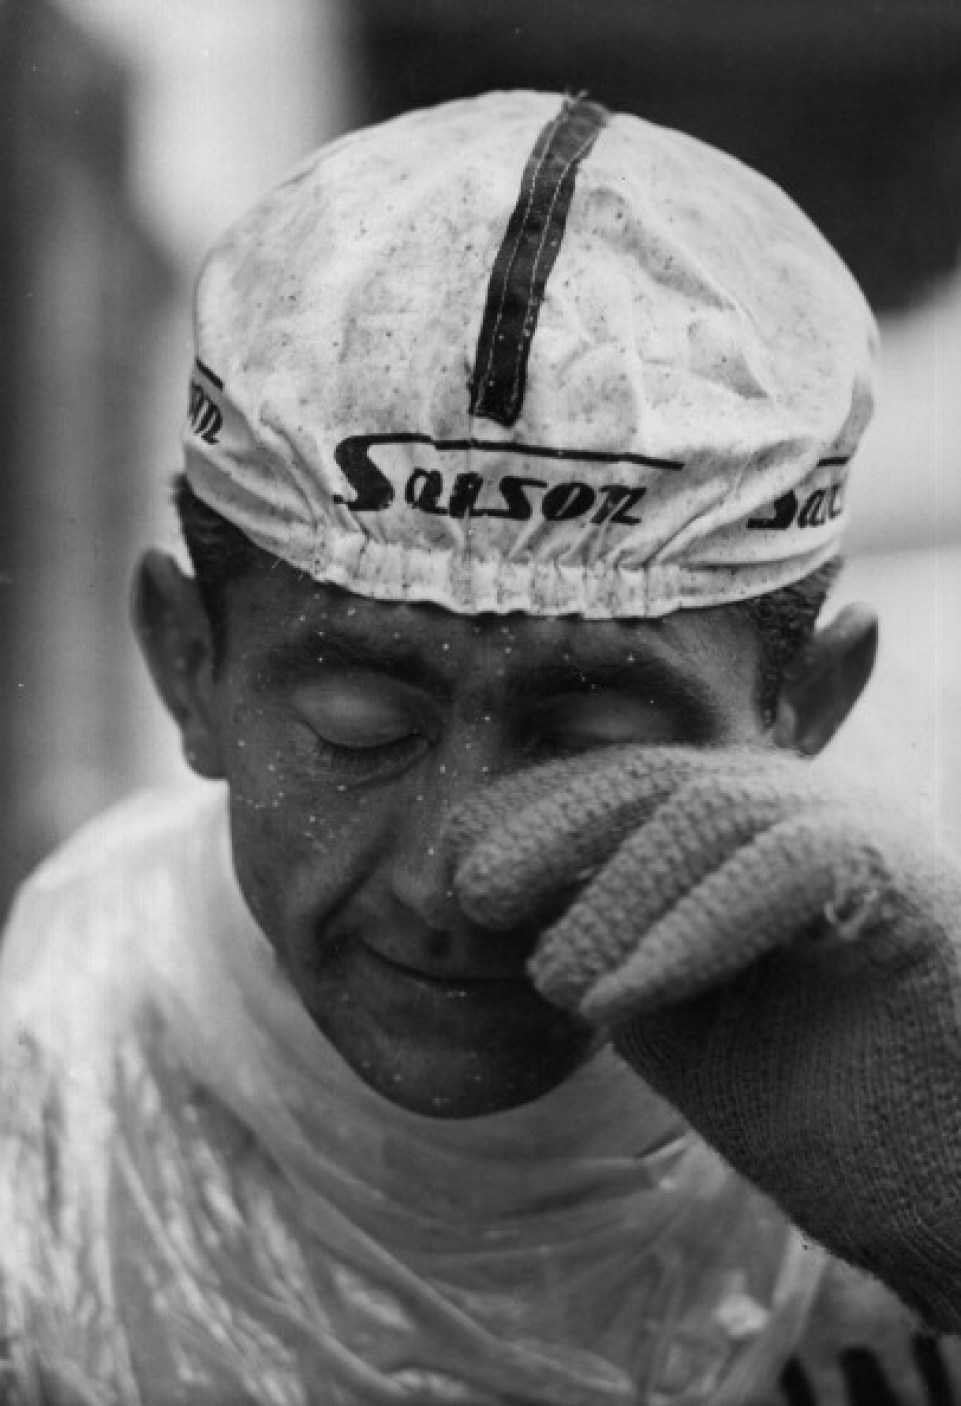 The Italian cyclist Italo Zilioli has just finished the 20th stage of the Giro d'Italia Madesimo-Stelvio. Stelvio, 3rd June 1965 (Photo by Giorgio Lotti/Mondadori Portfolio via Getty Images)